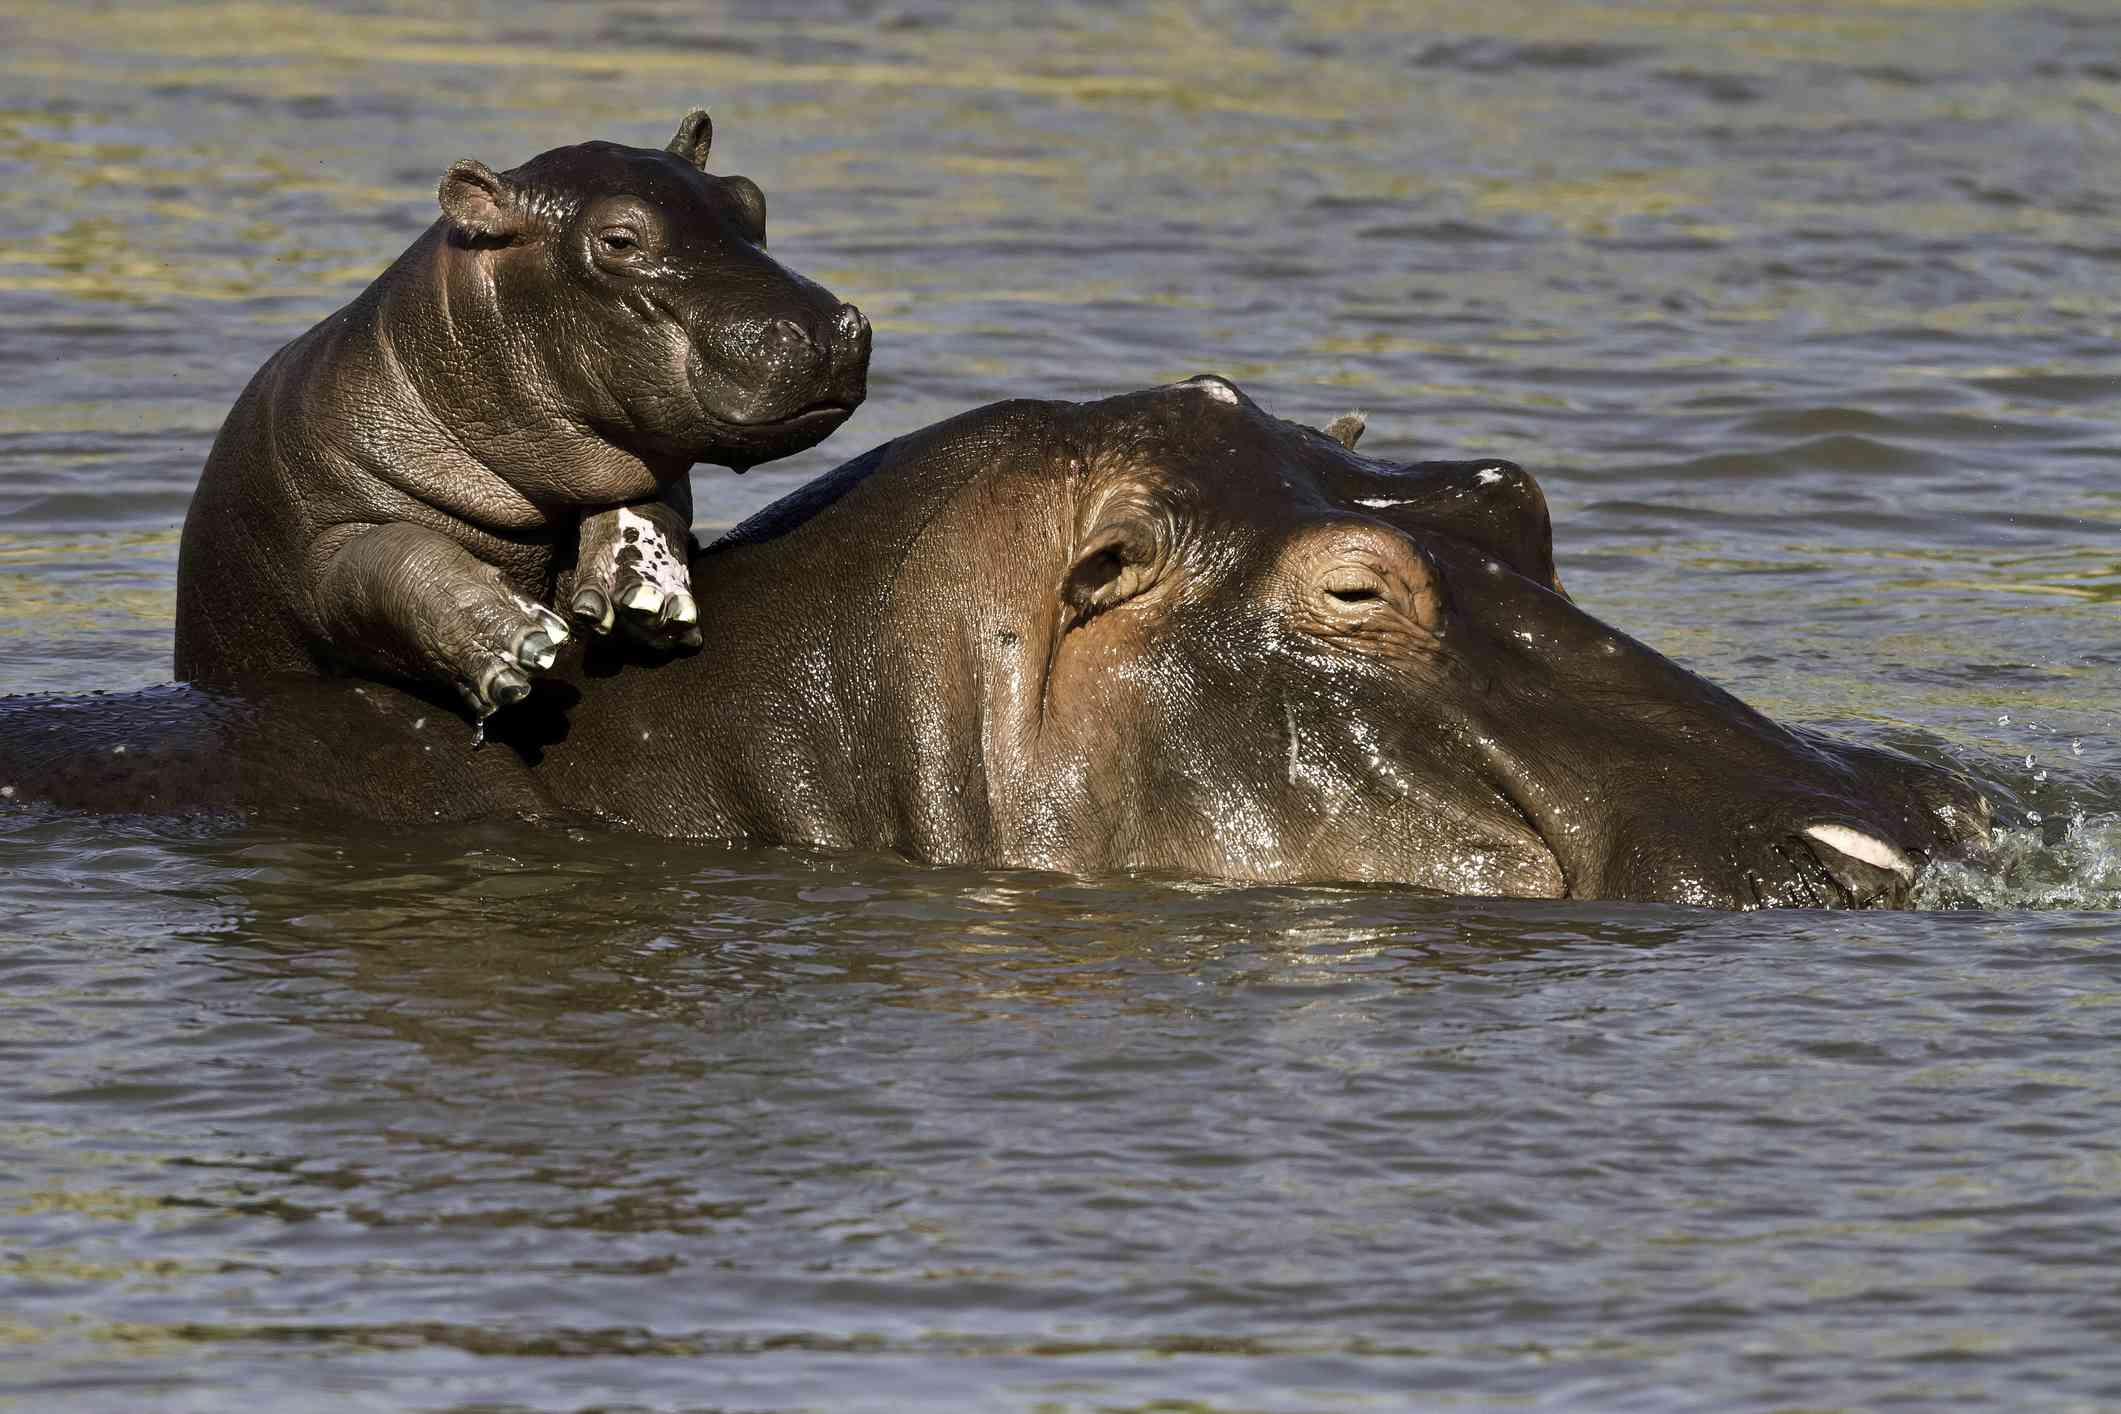 Baby hippo and mother in the water